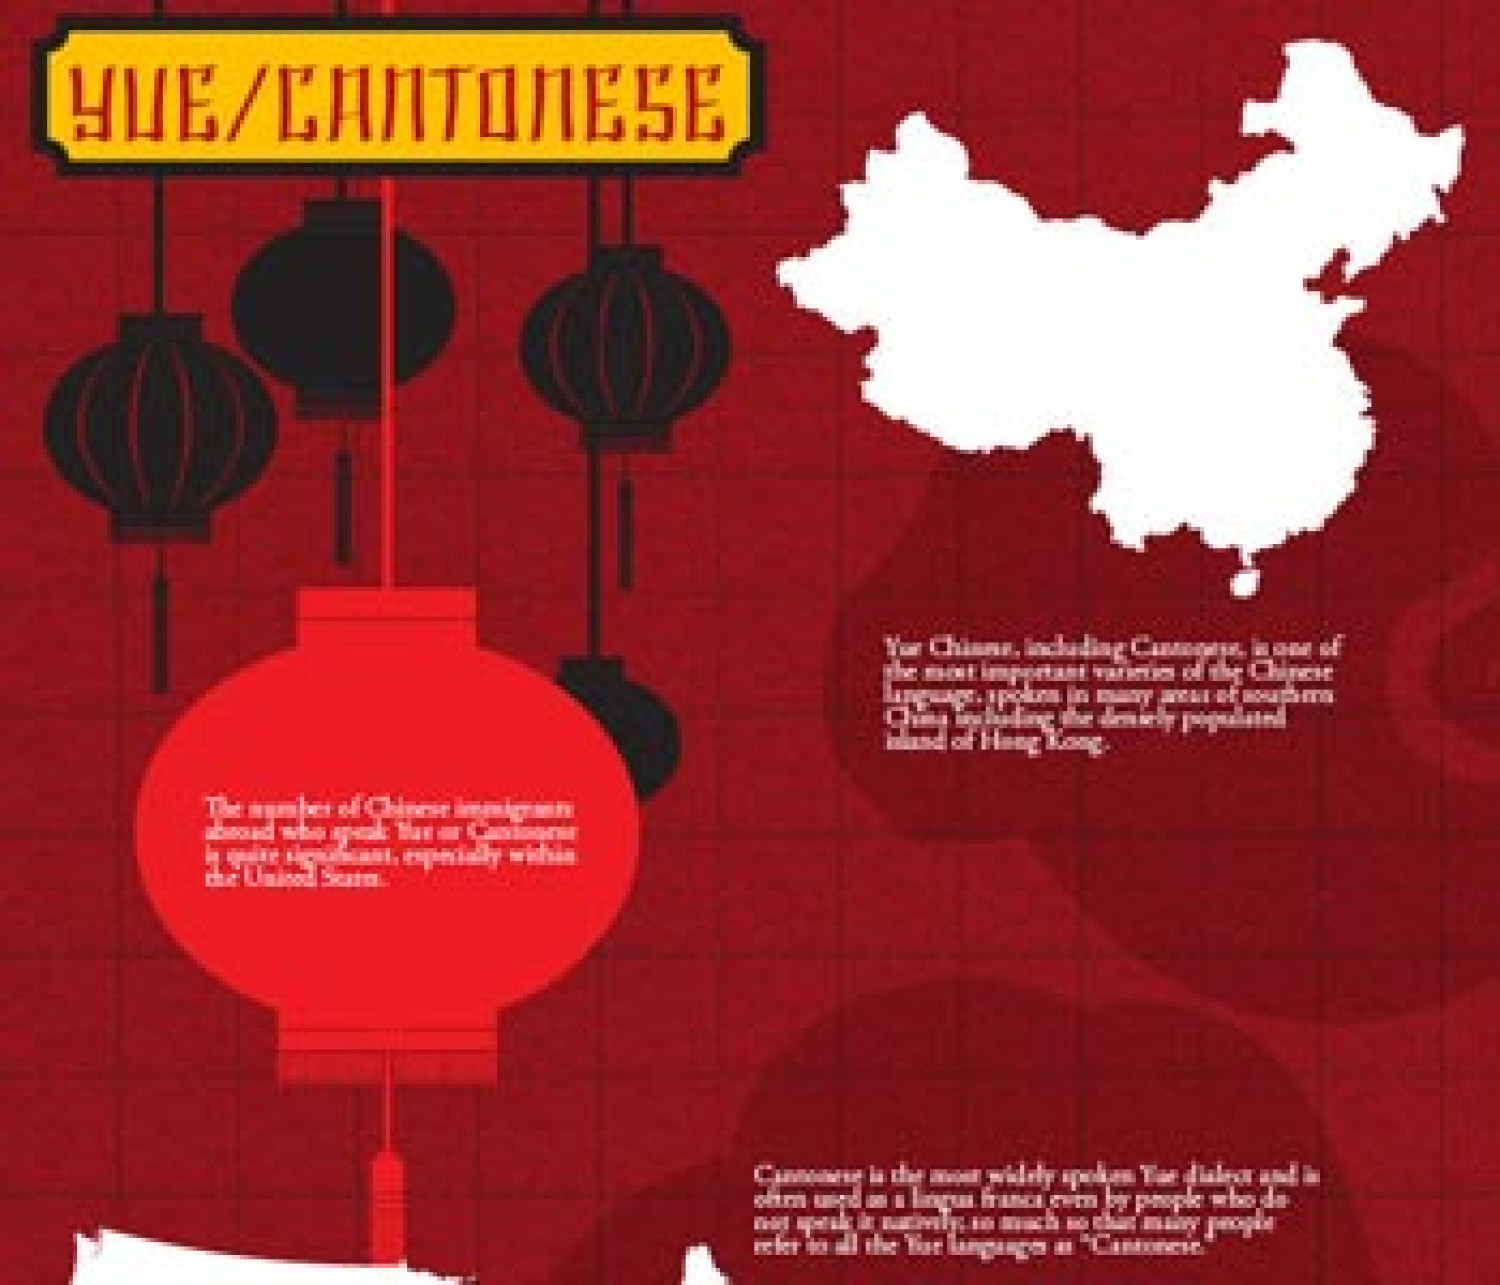 Yue/Cantonese Infographic Infographic